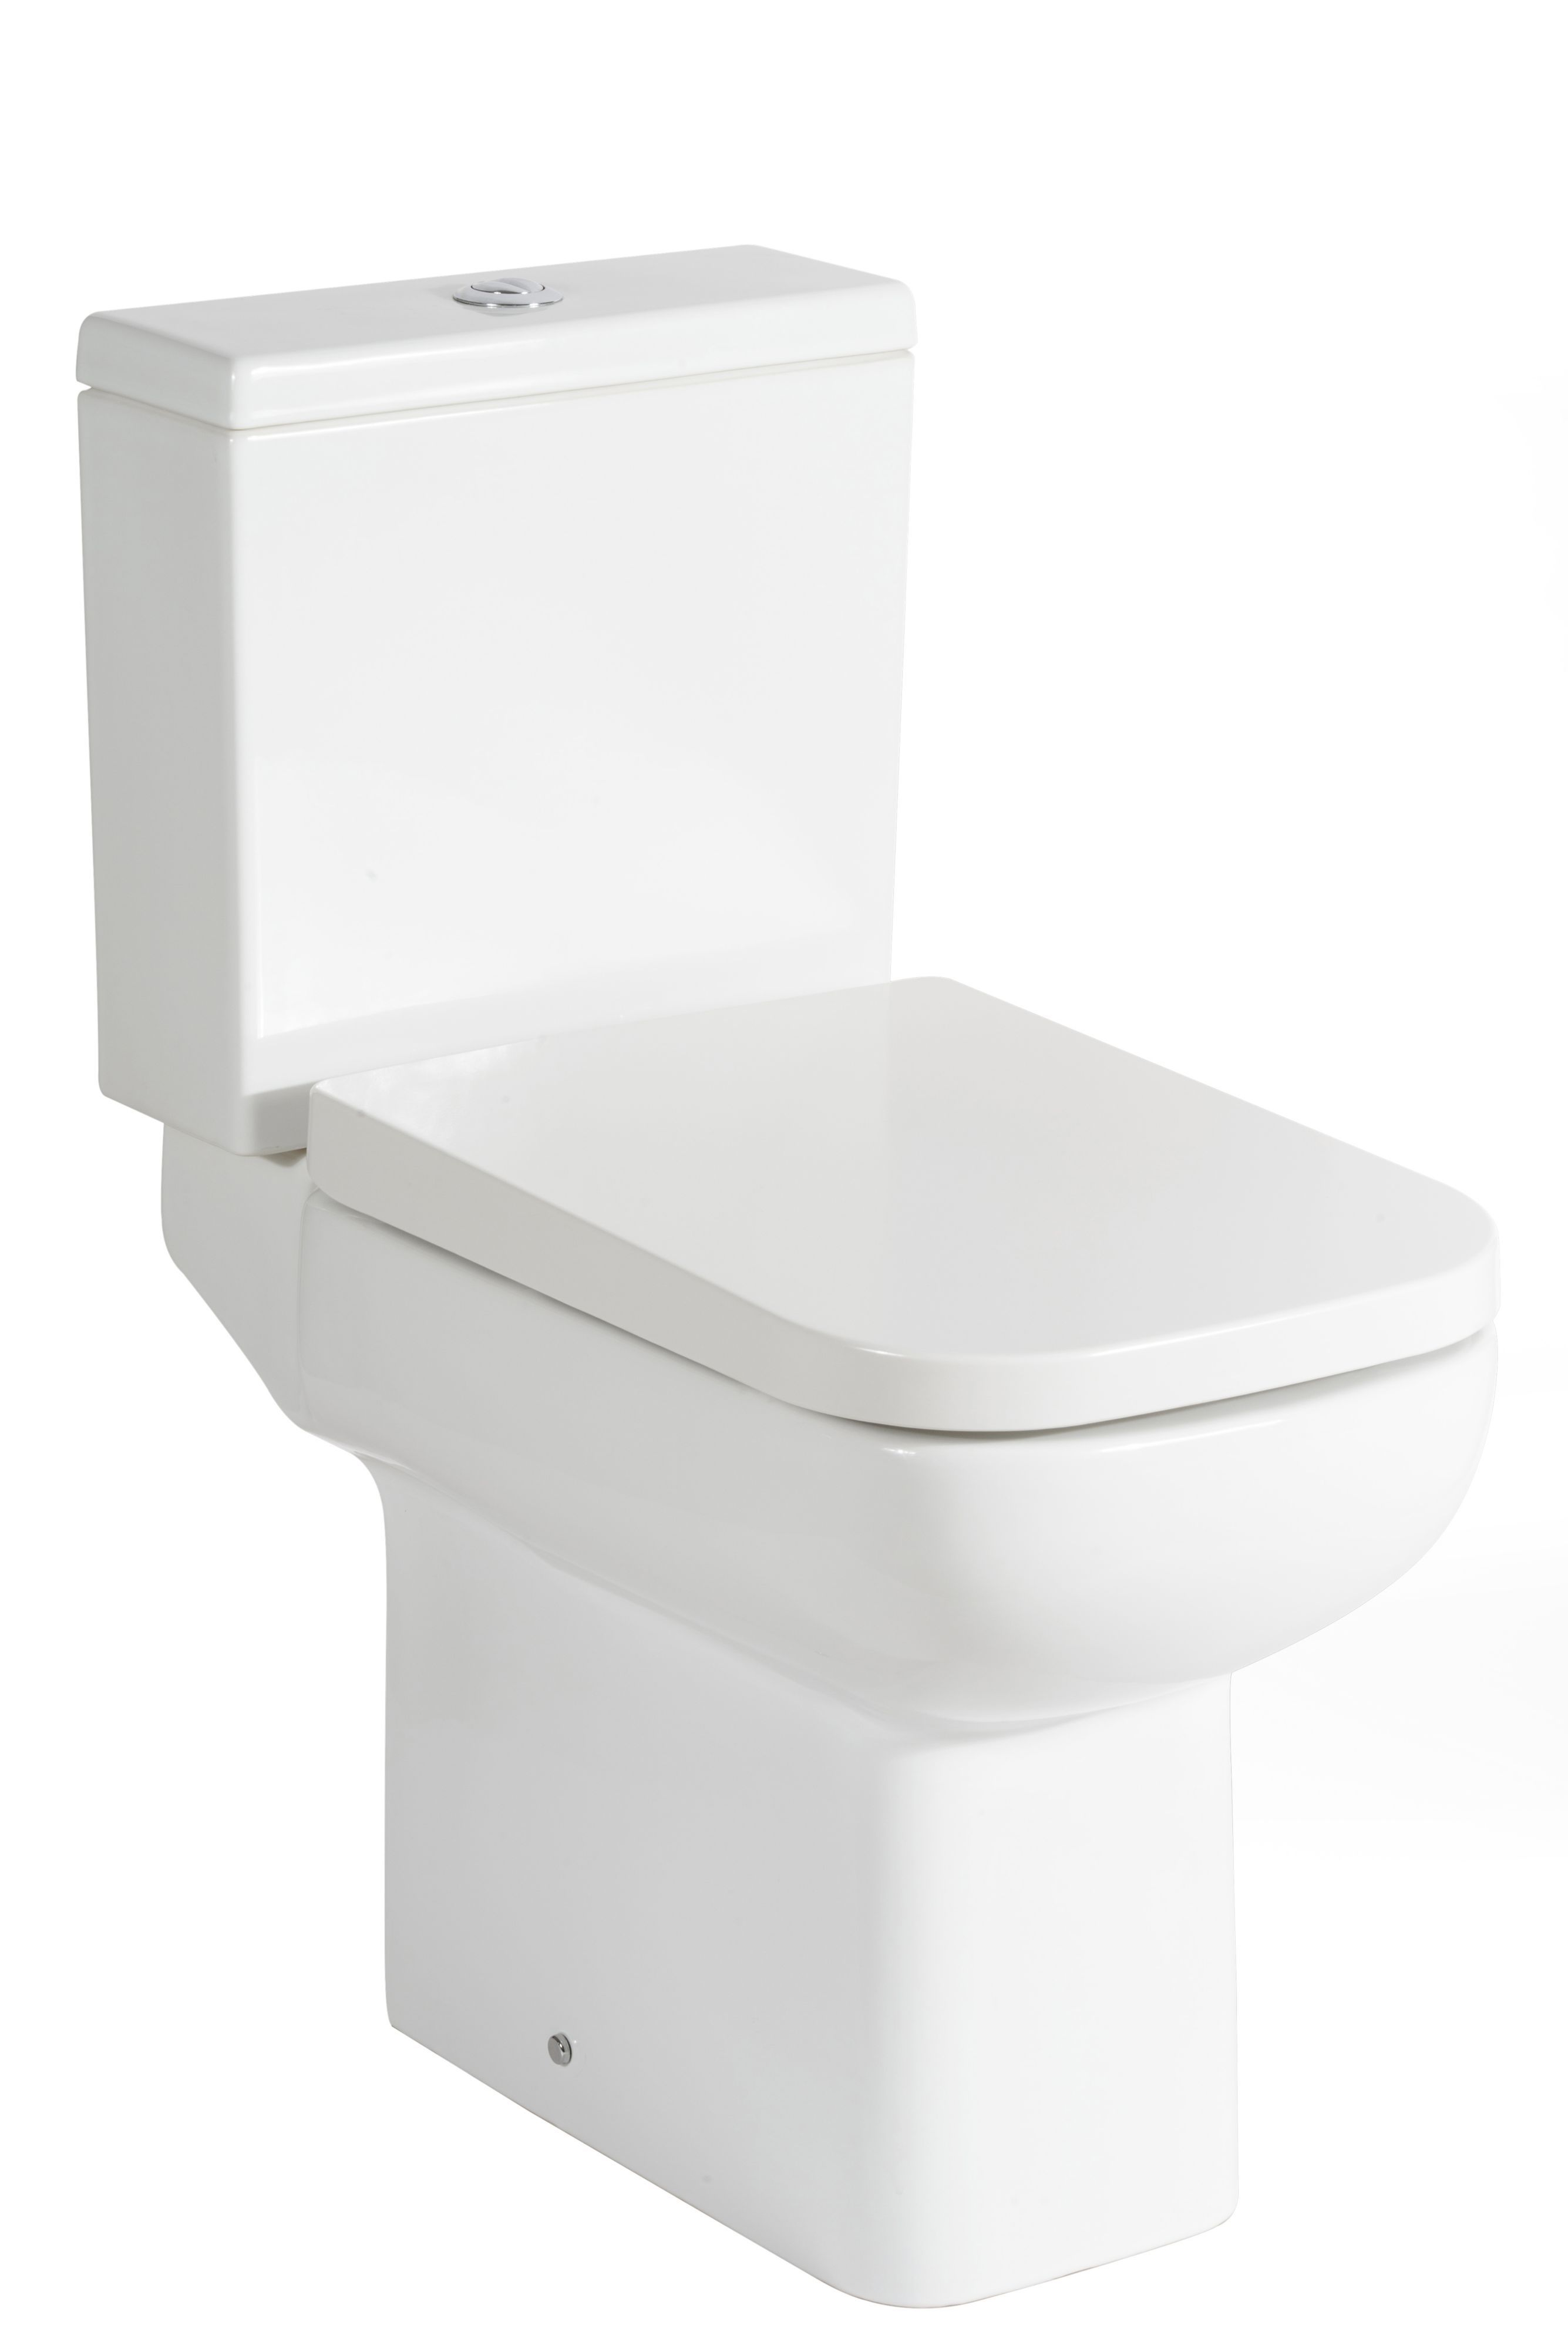 Cooke lewis fabienne close coupled toilet with soft B q bathroom design service